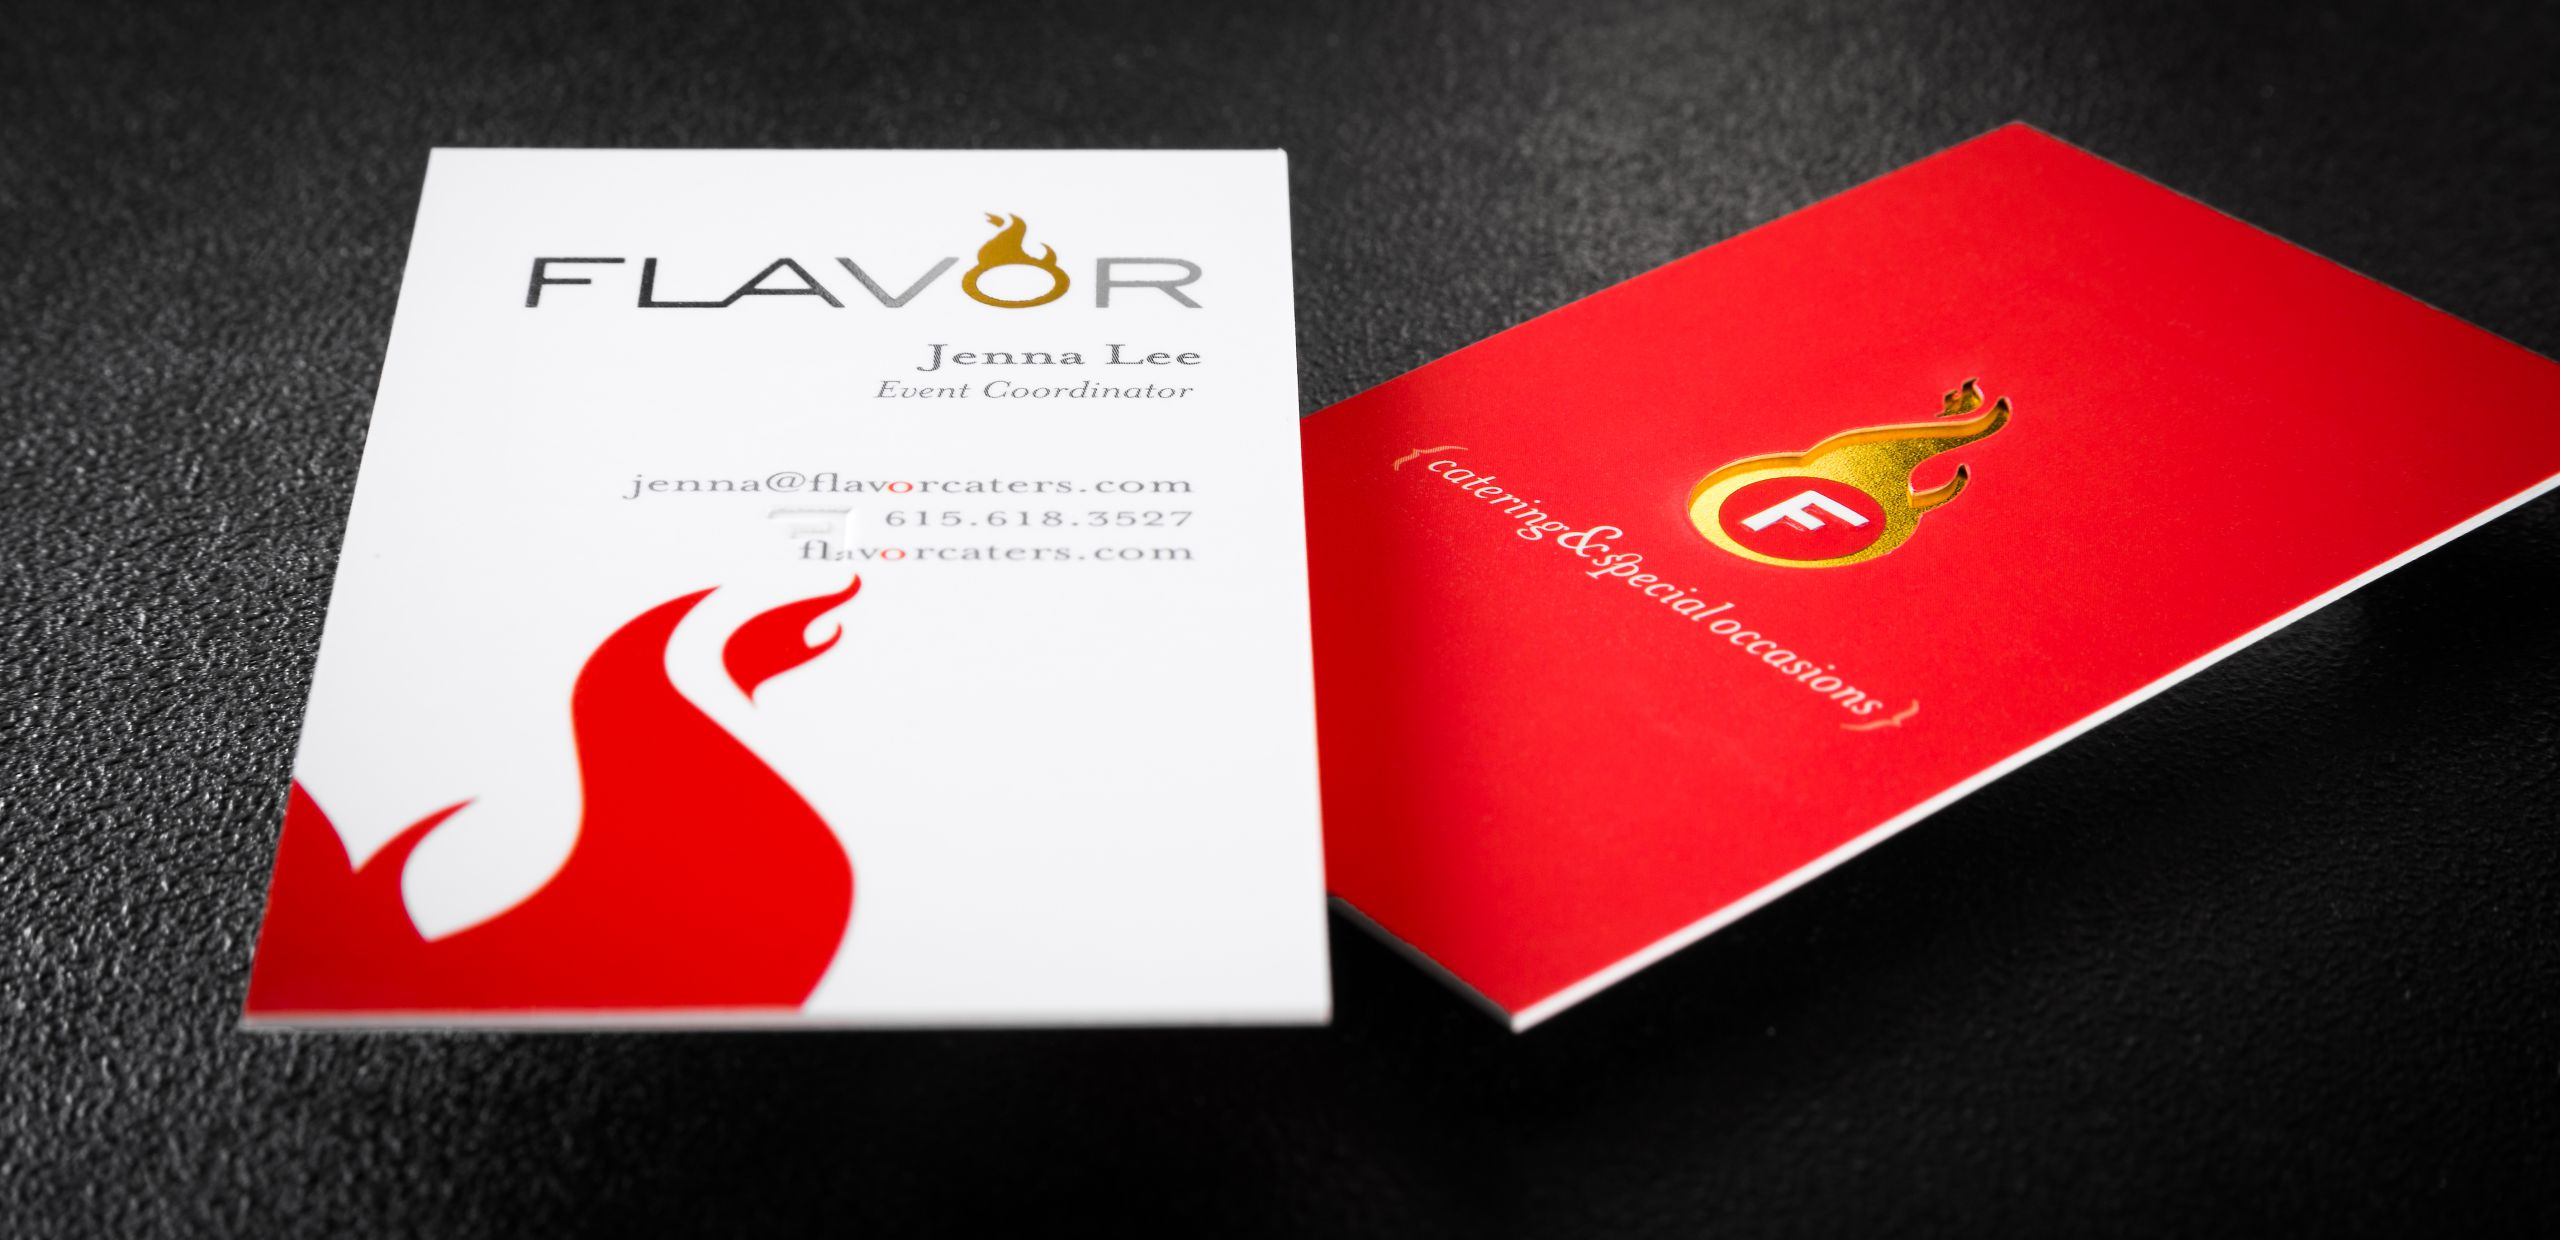 Custom online business card plastic card printing 4colorprint 32pt suede laminated cards custom die cut gold foil embossing reheart Gallery